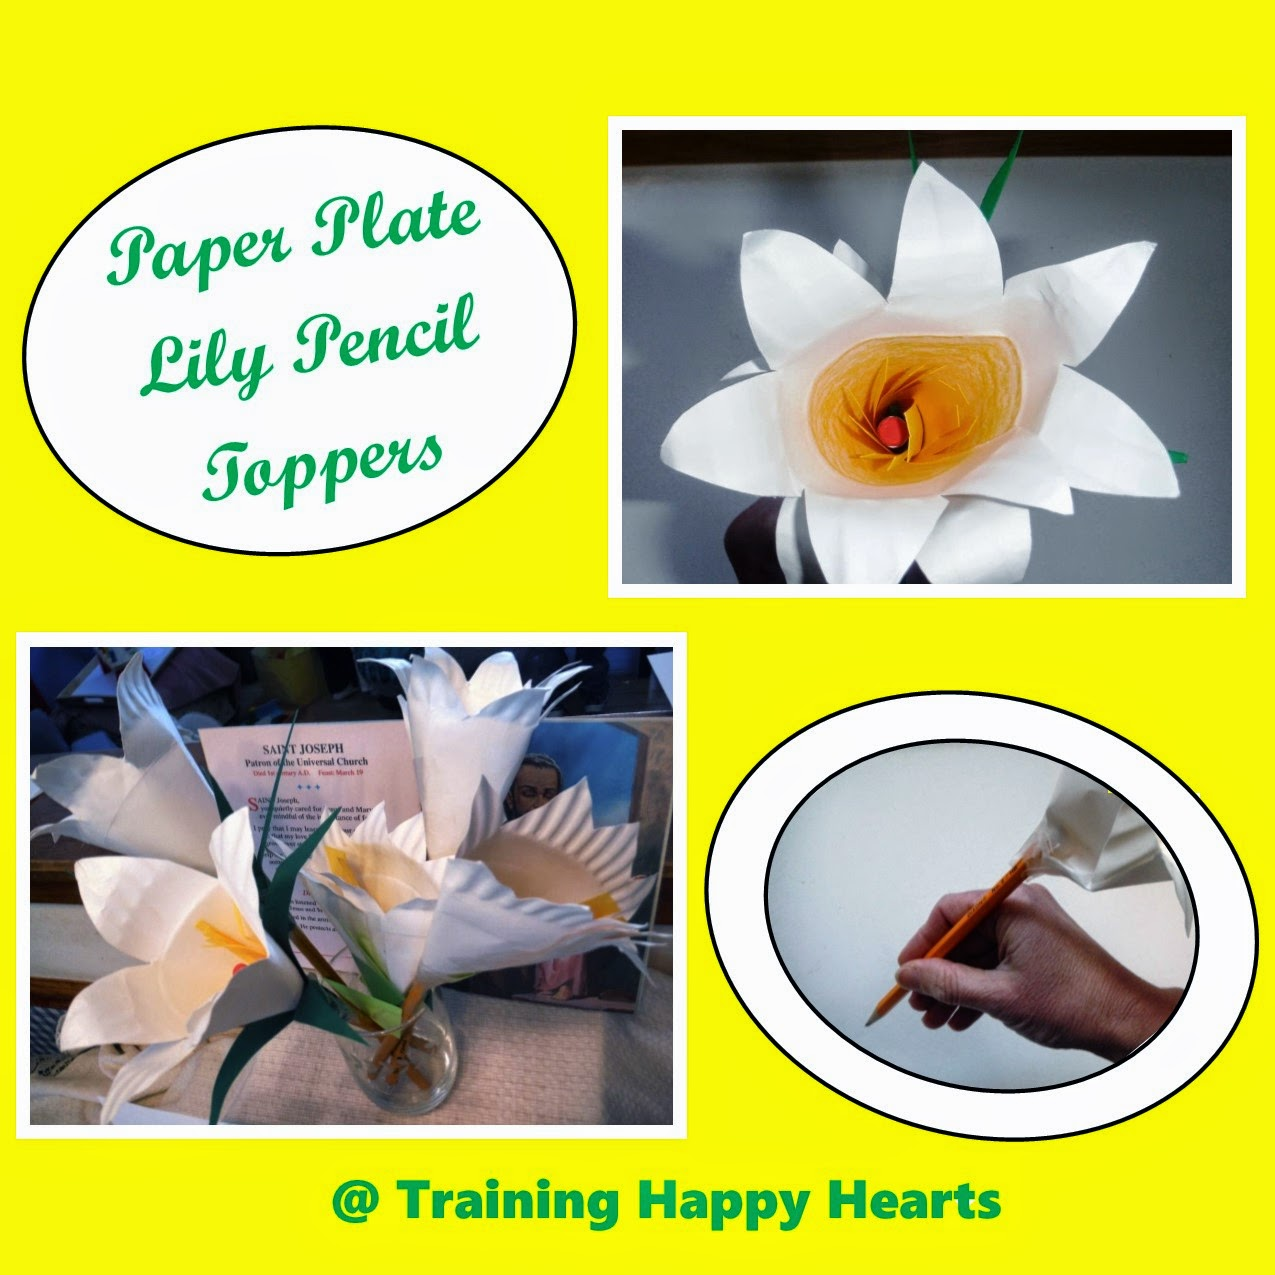 http://traininghappyhearts.blogspot.com/2015/03/a-simple-seasonal-craft-paper-plate.html